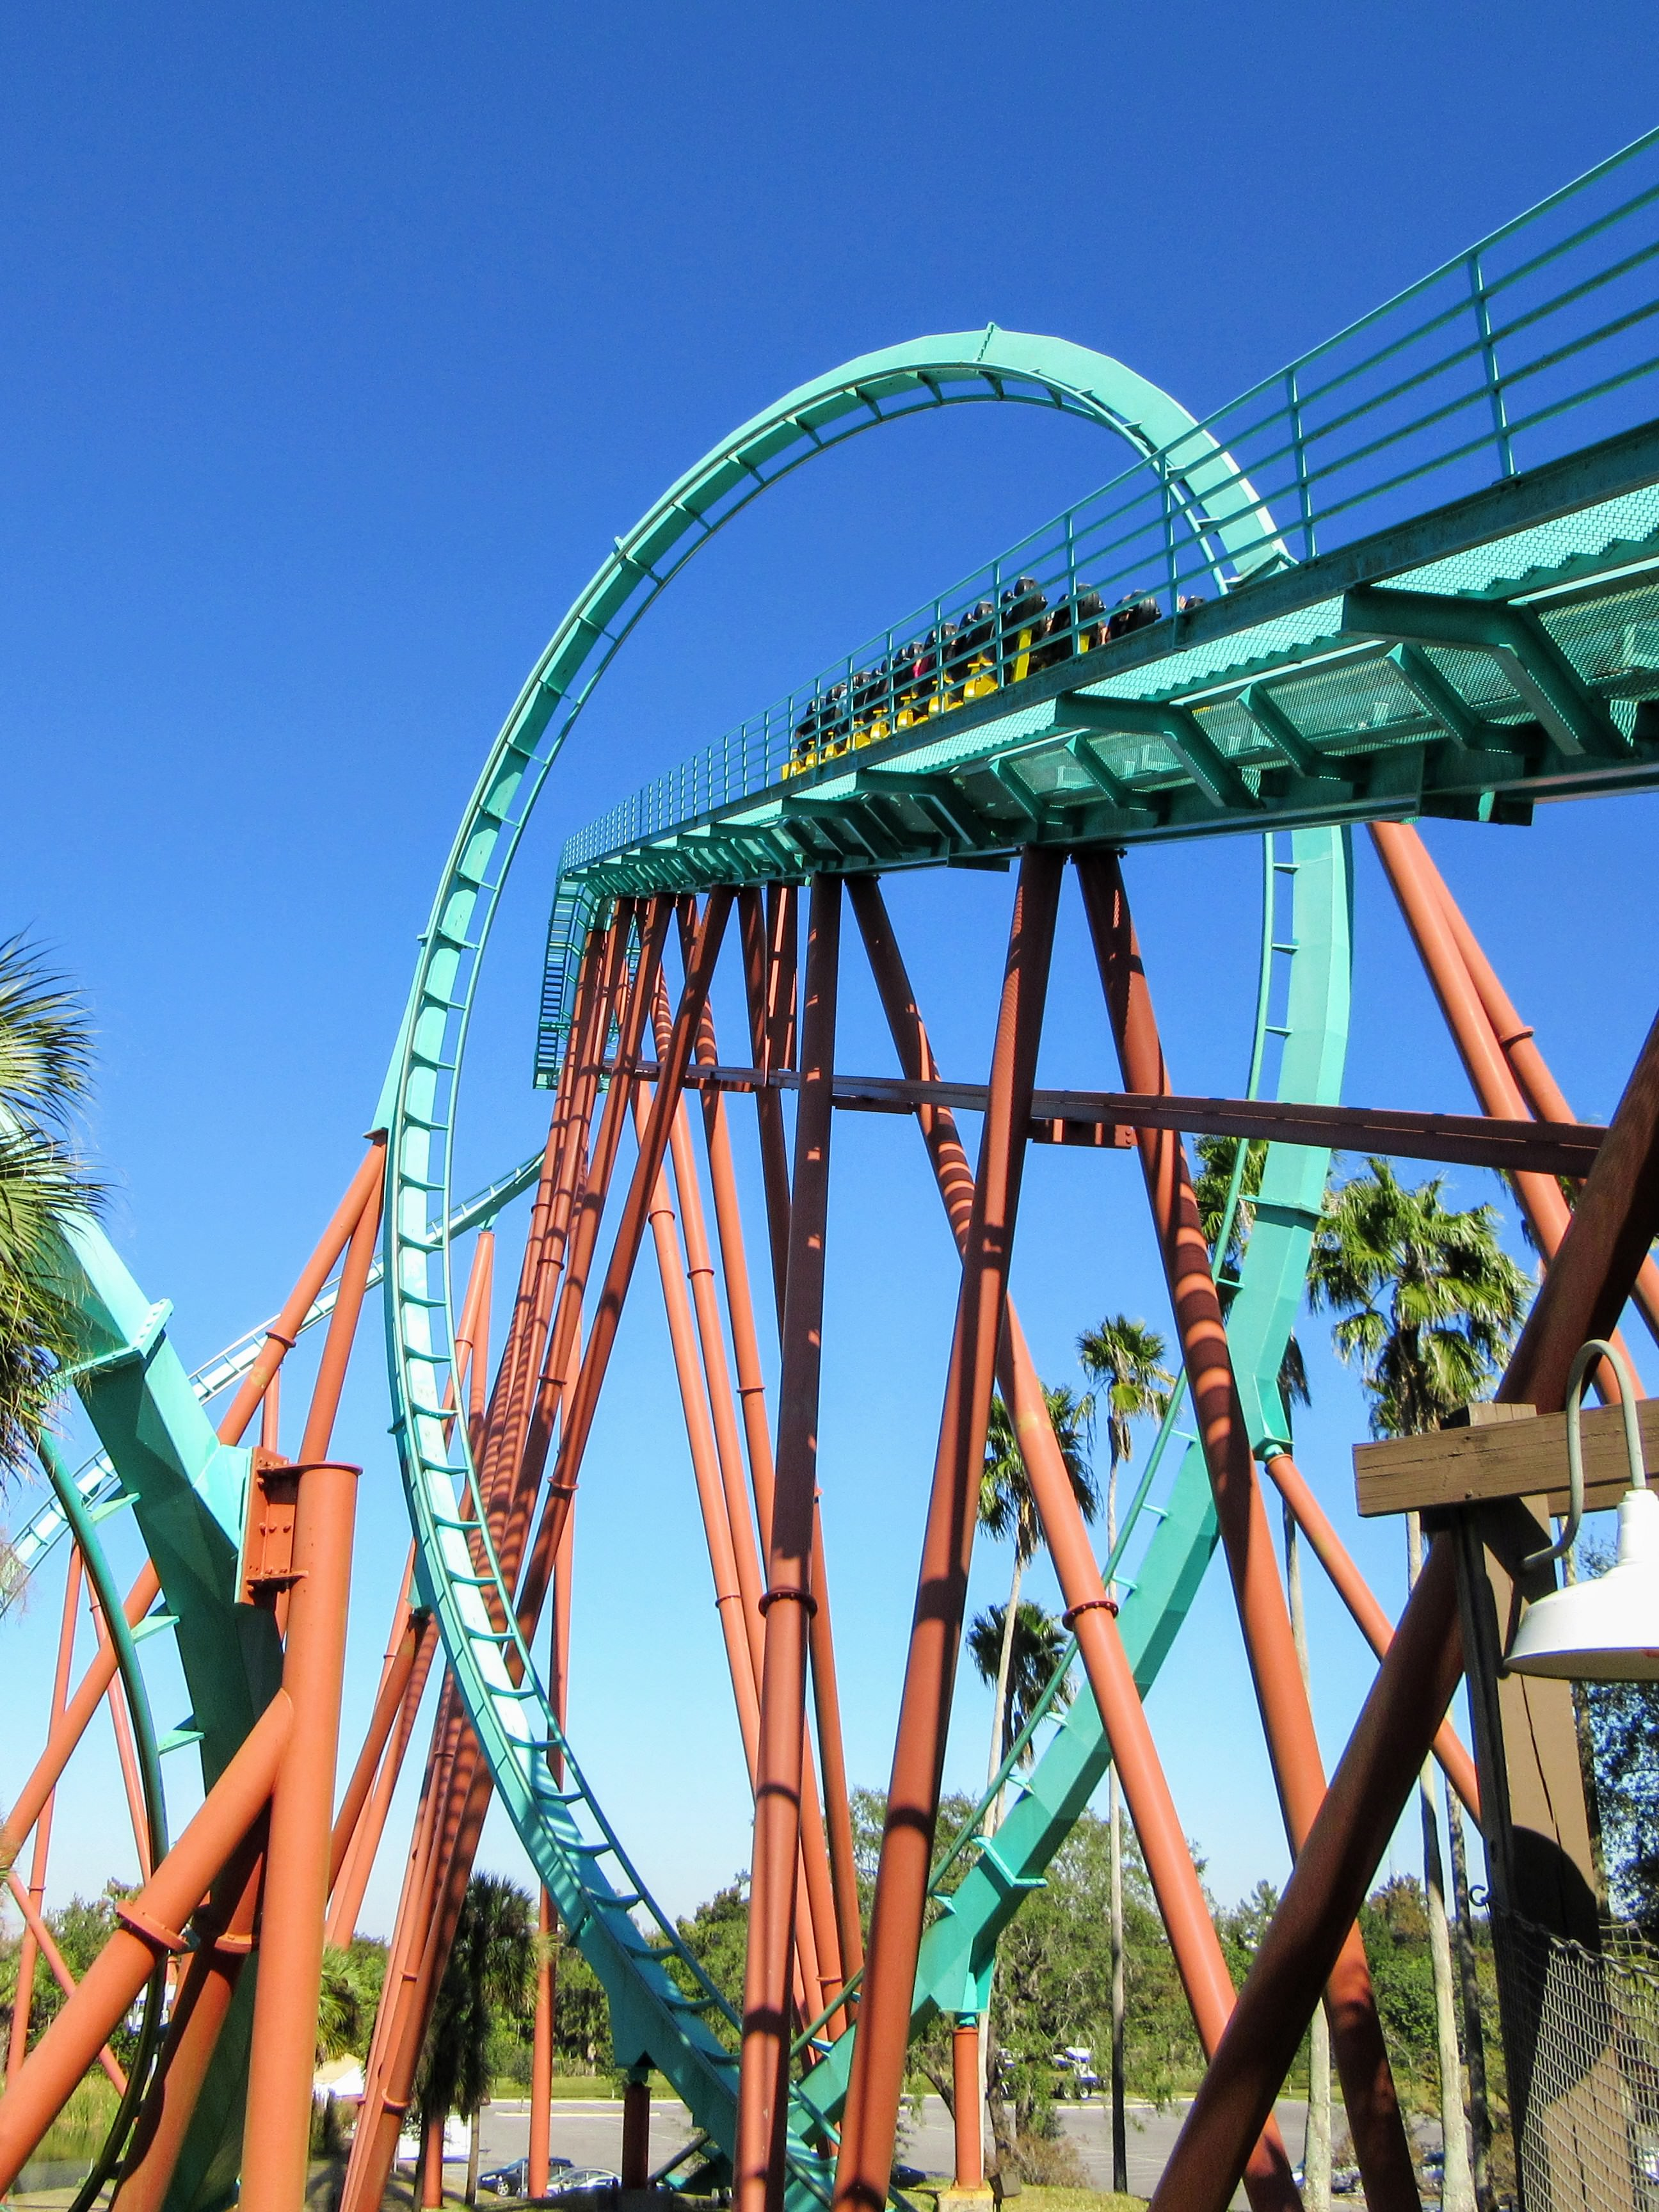 Visiting busch gardens tampa bay a review tips my - Roller coasters at busch gardens ...